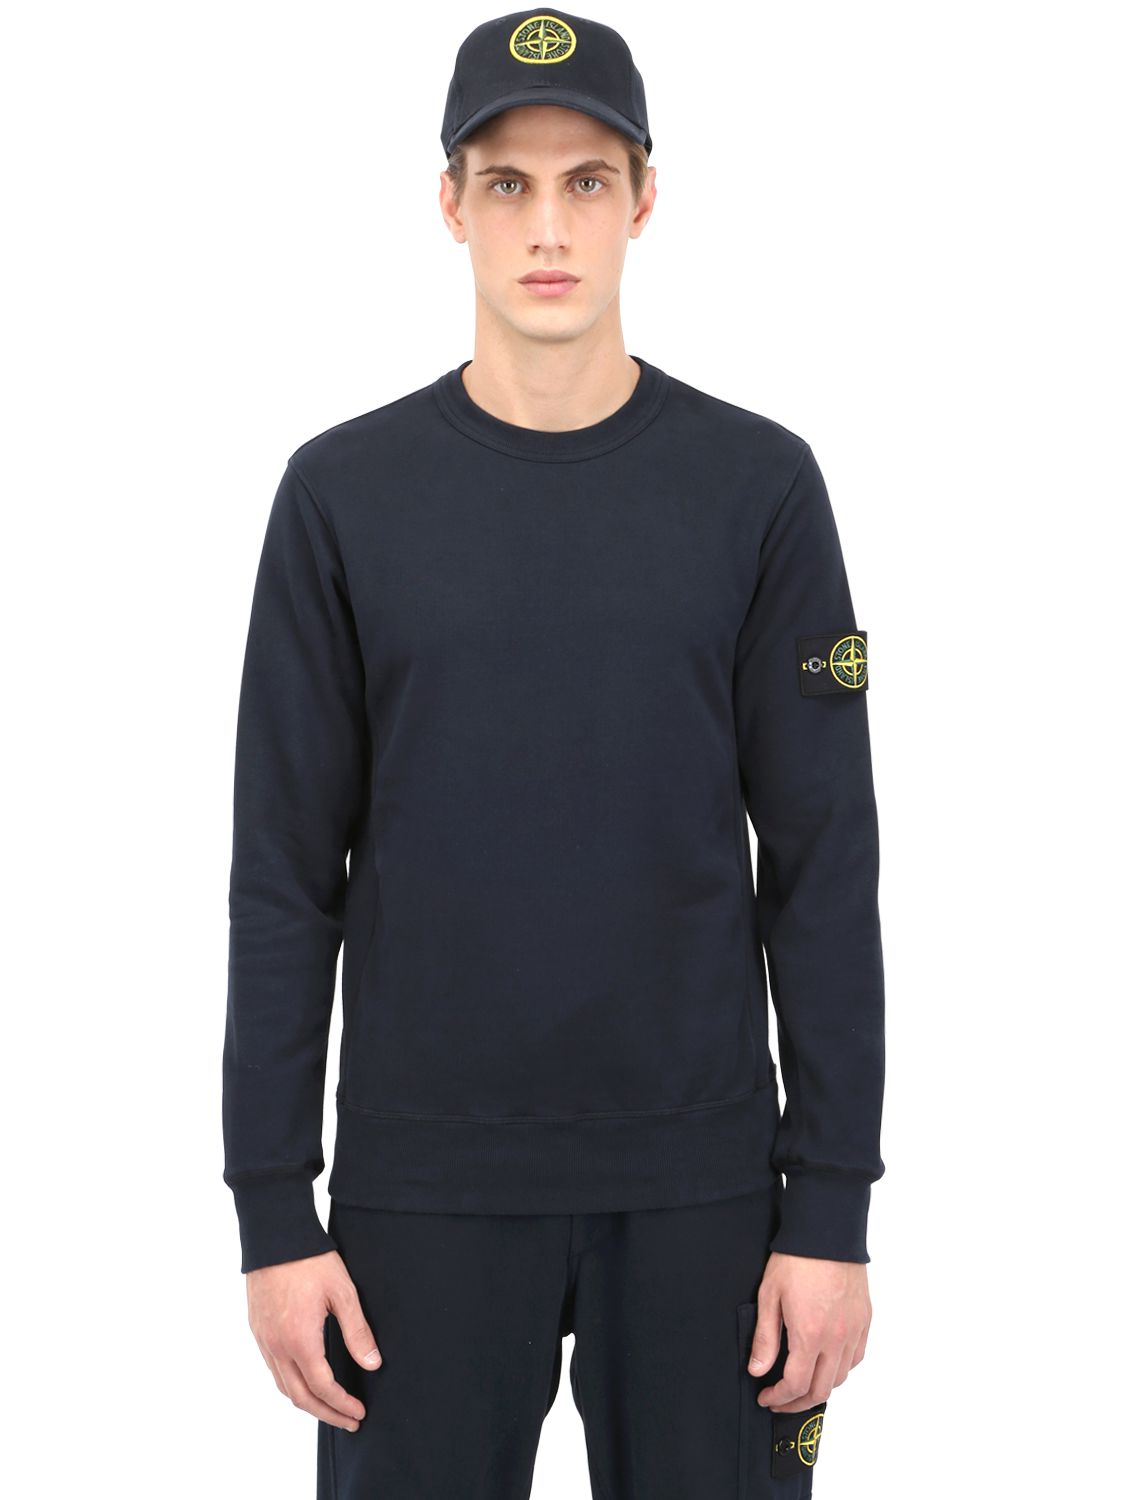 stone island cotton sweatshirt in blue for men navy lyst. Black Bedroom Furniture Sets. Home Design Ideas